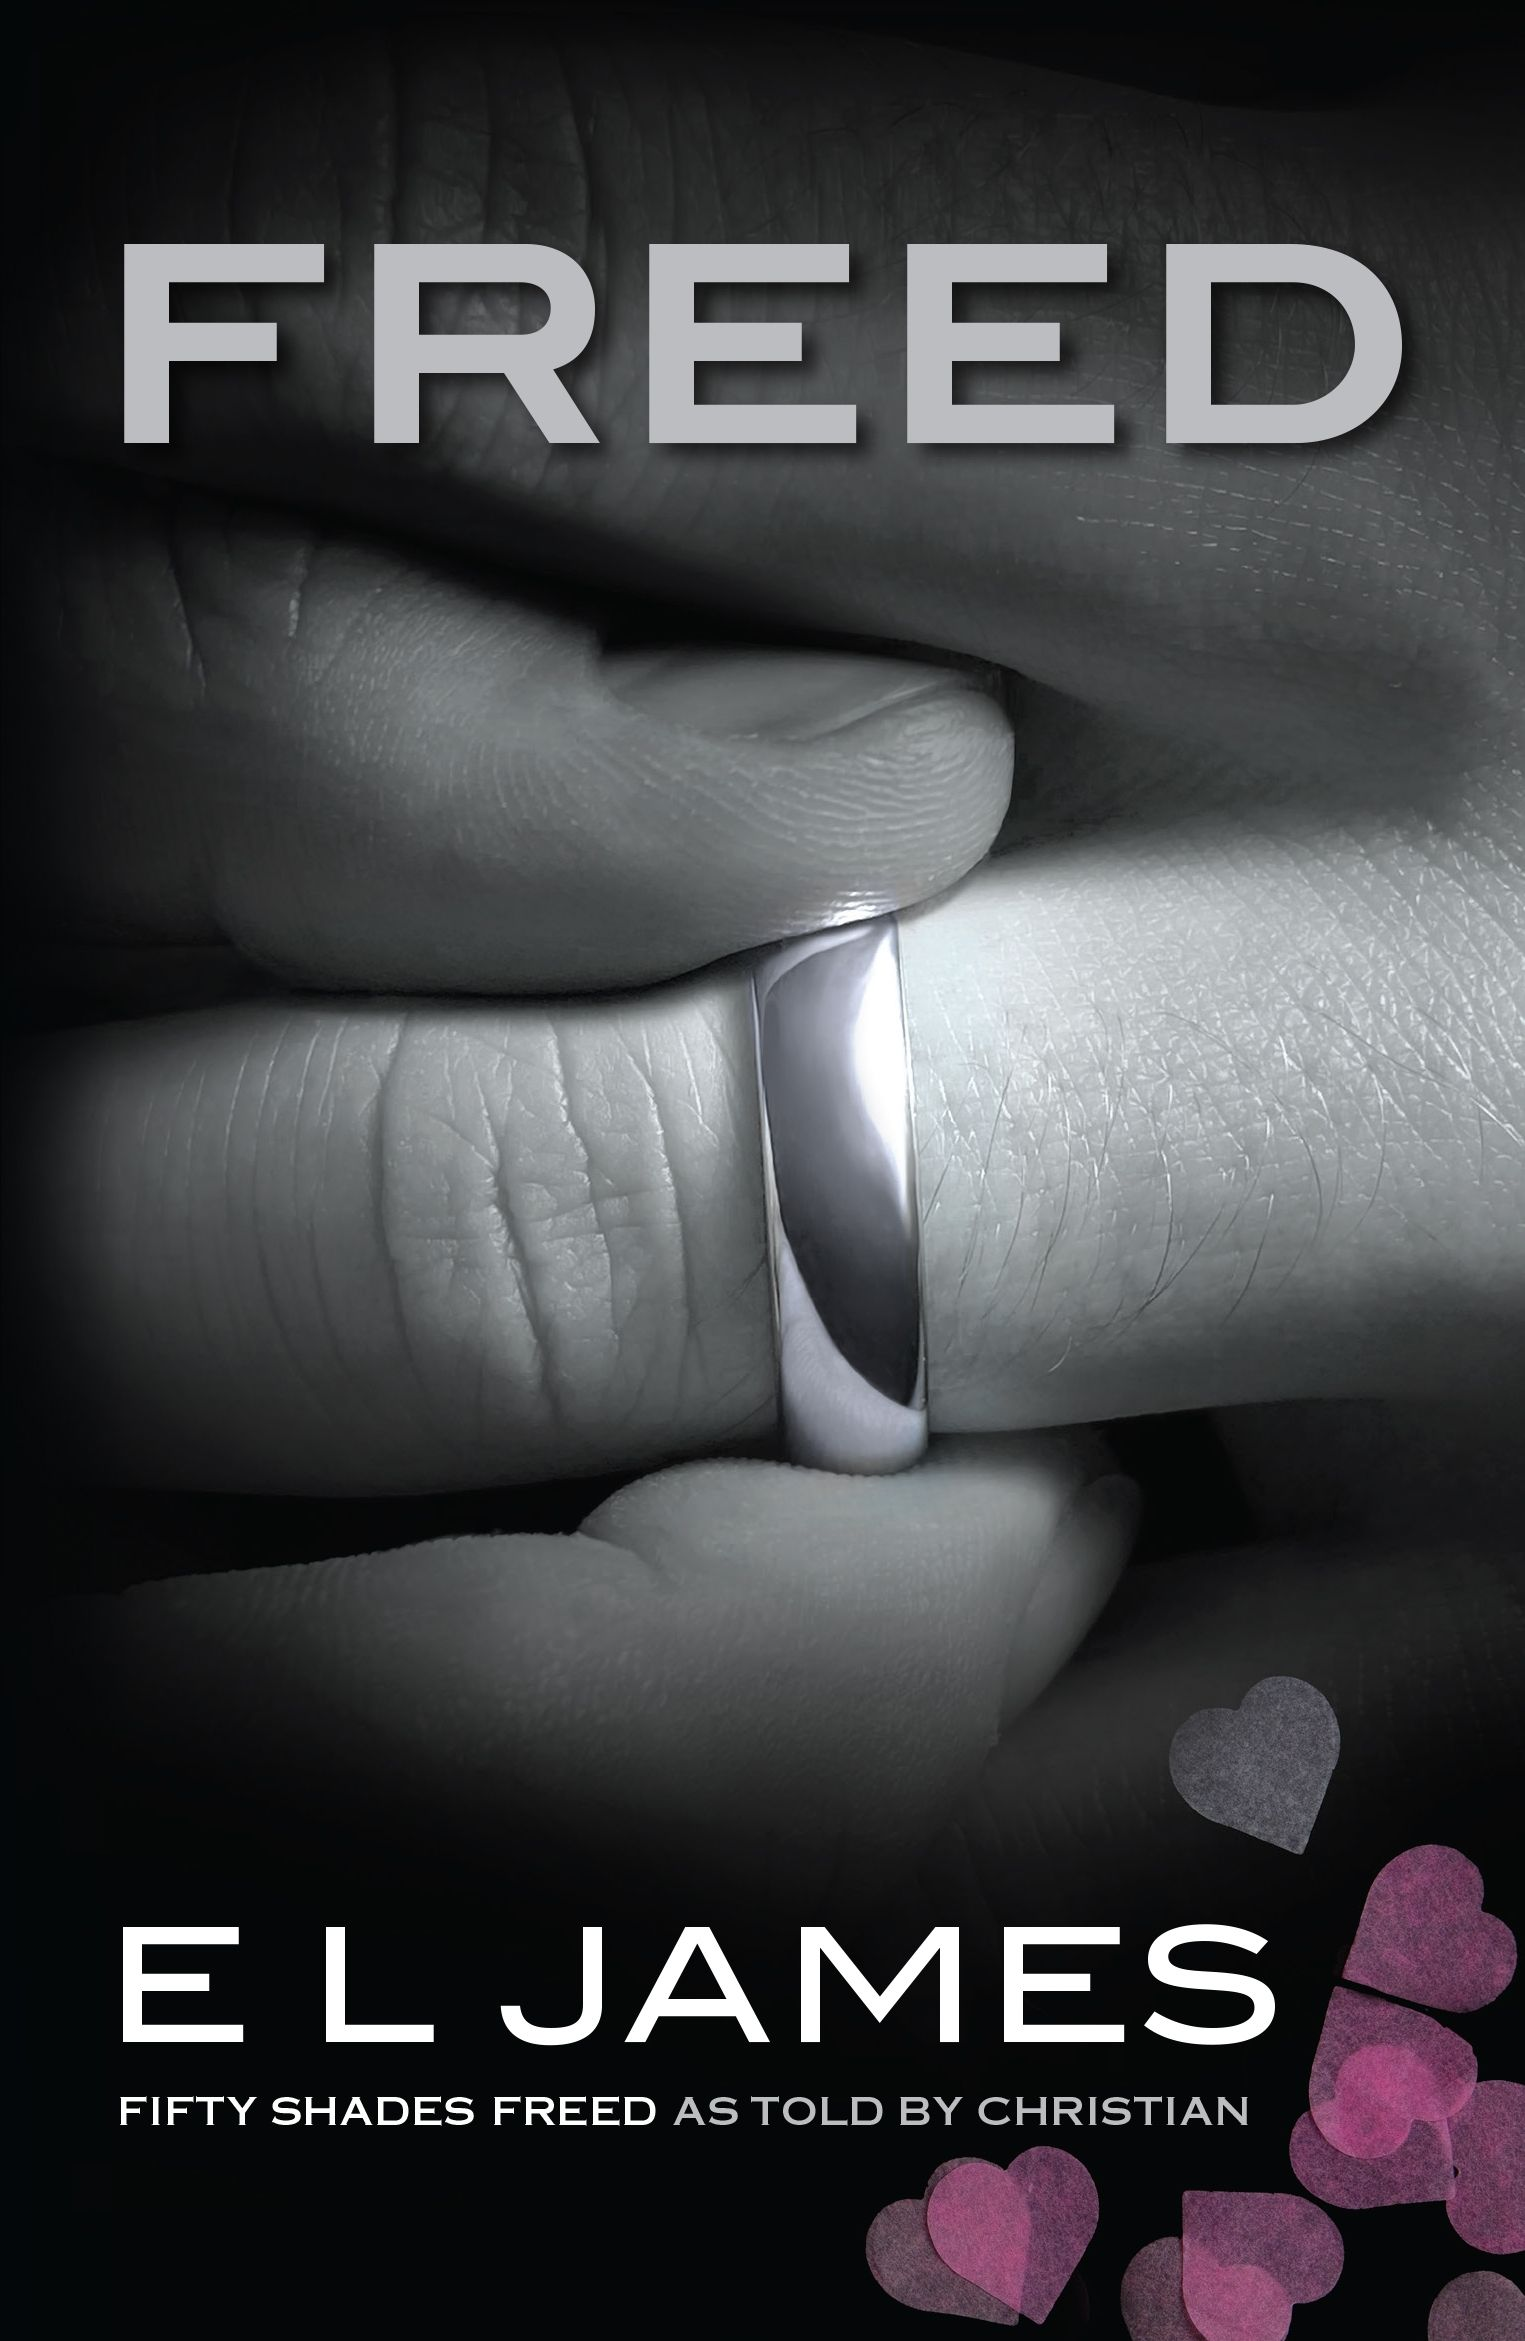 Freed : 'Fifty Shades Freed' as told by Christian